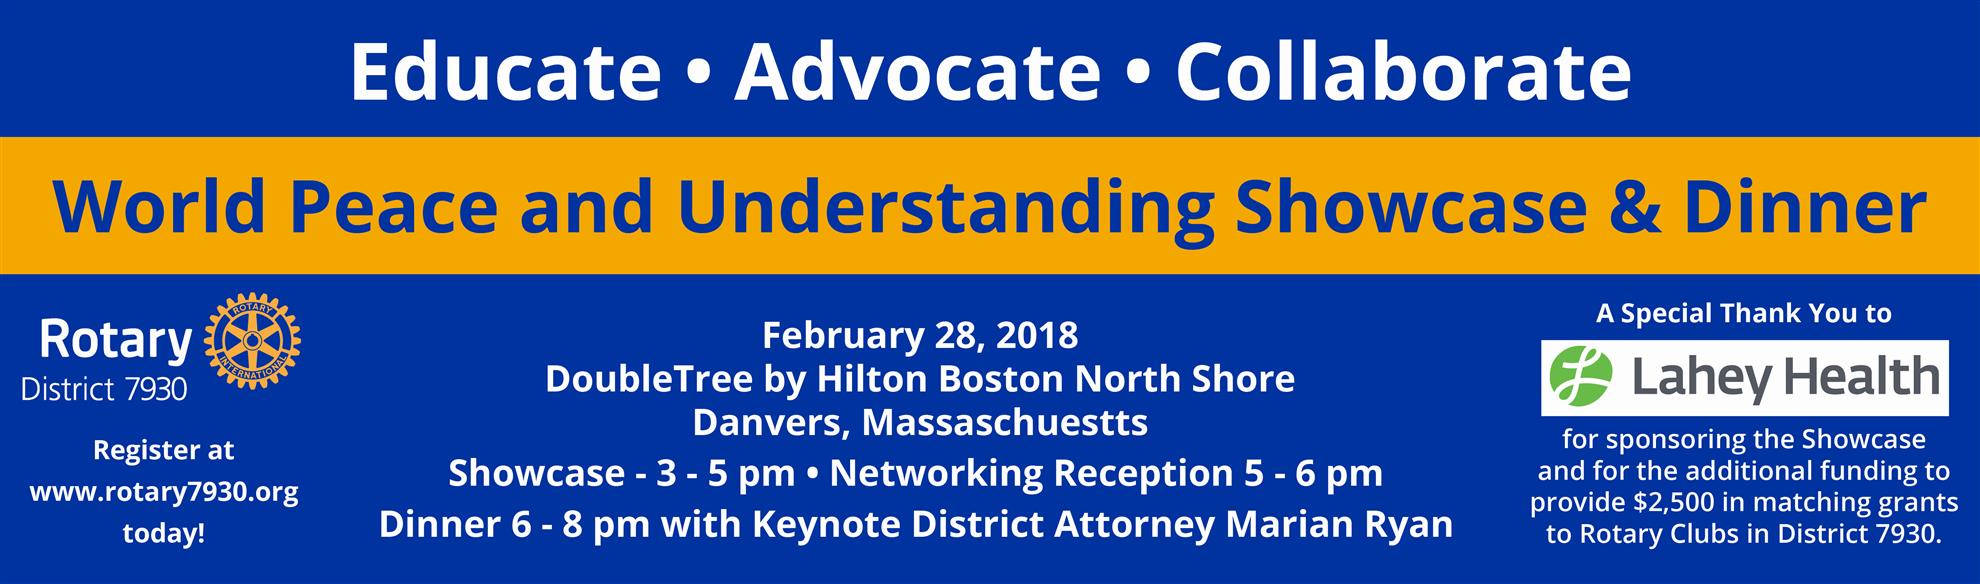 Stories district 7930 please dont miss the opportunity to make a difference in the conversation about the opioid crisis or more globally addiction nvjuhfo Choice Image